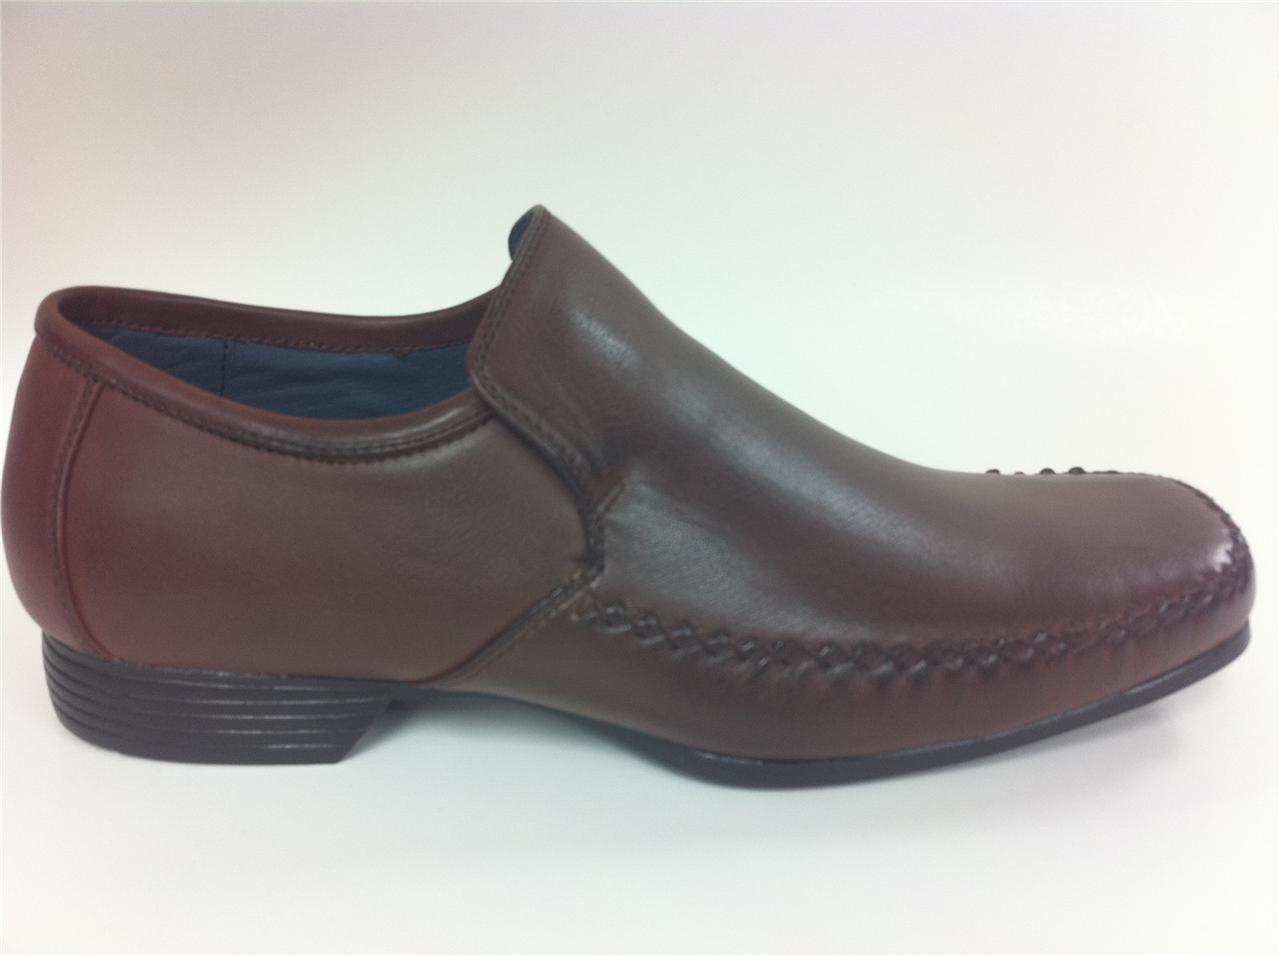 Mens-Shoes-Slip-On-sizes-uk-6-7-8-9-10-11-12